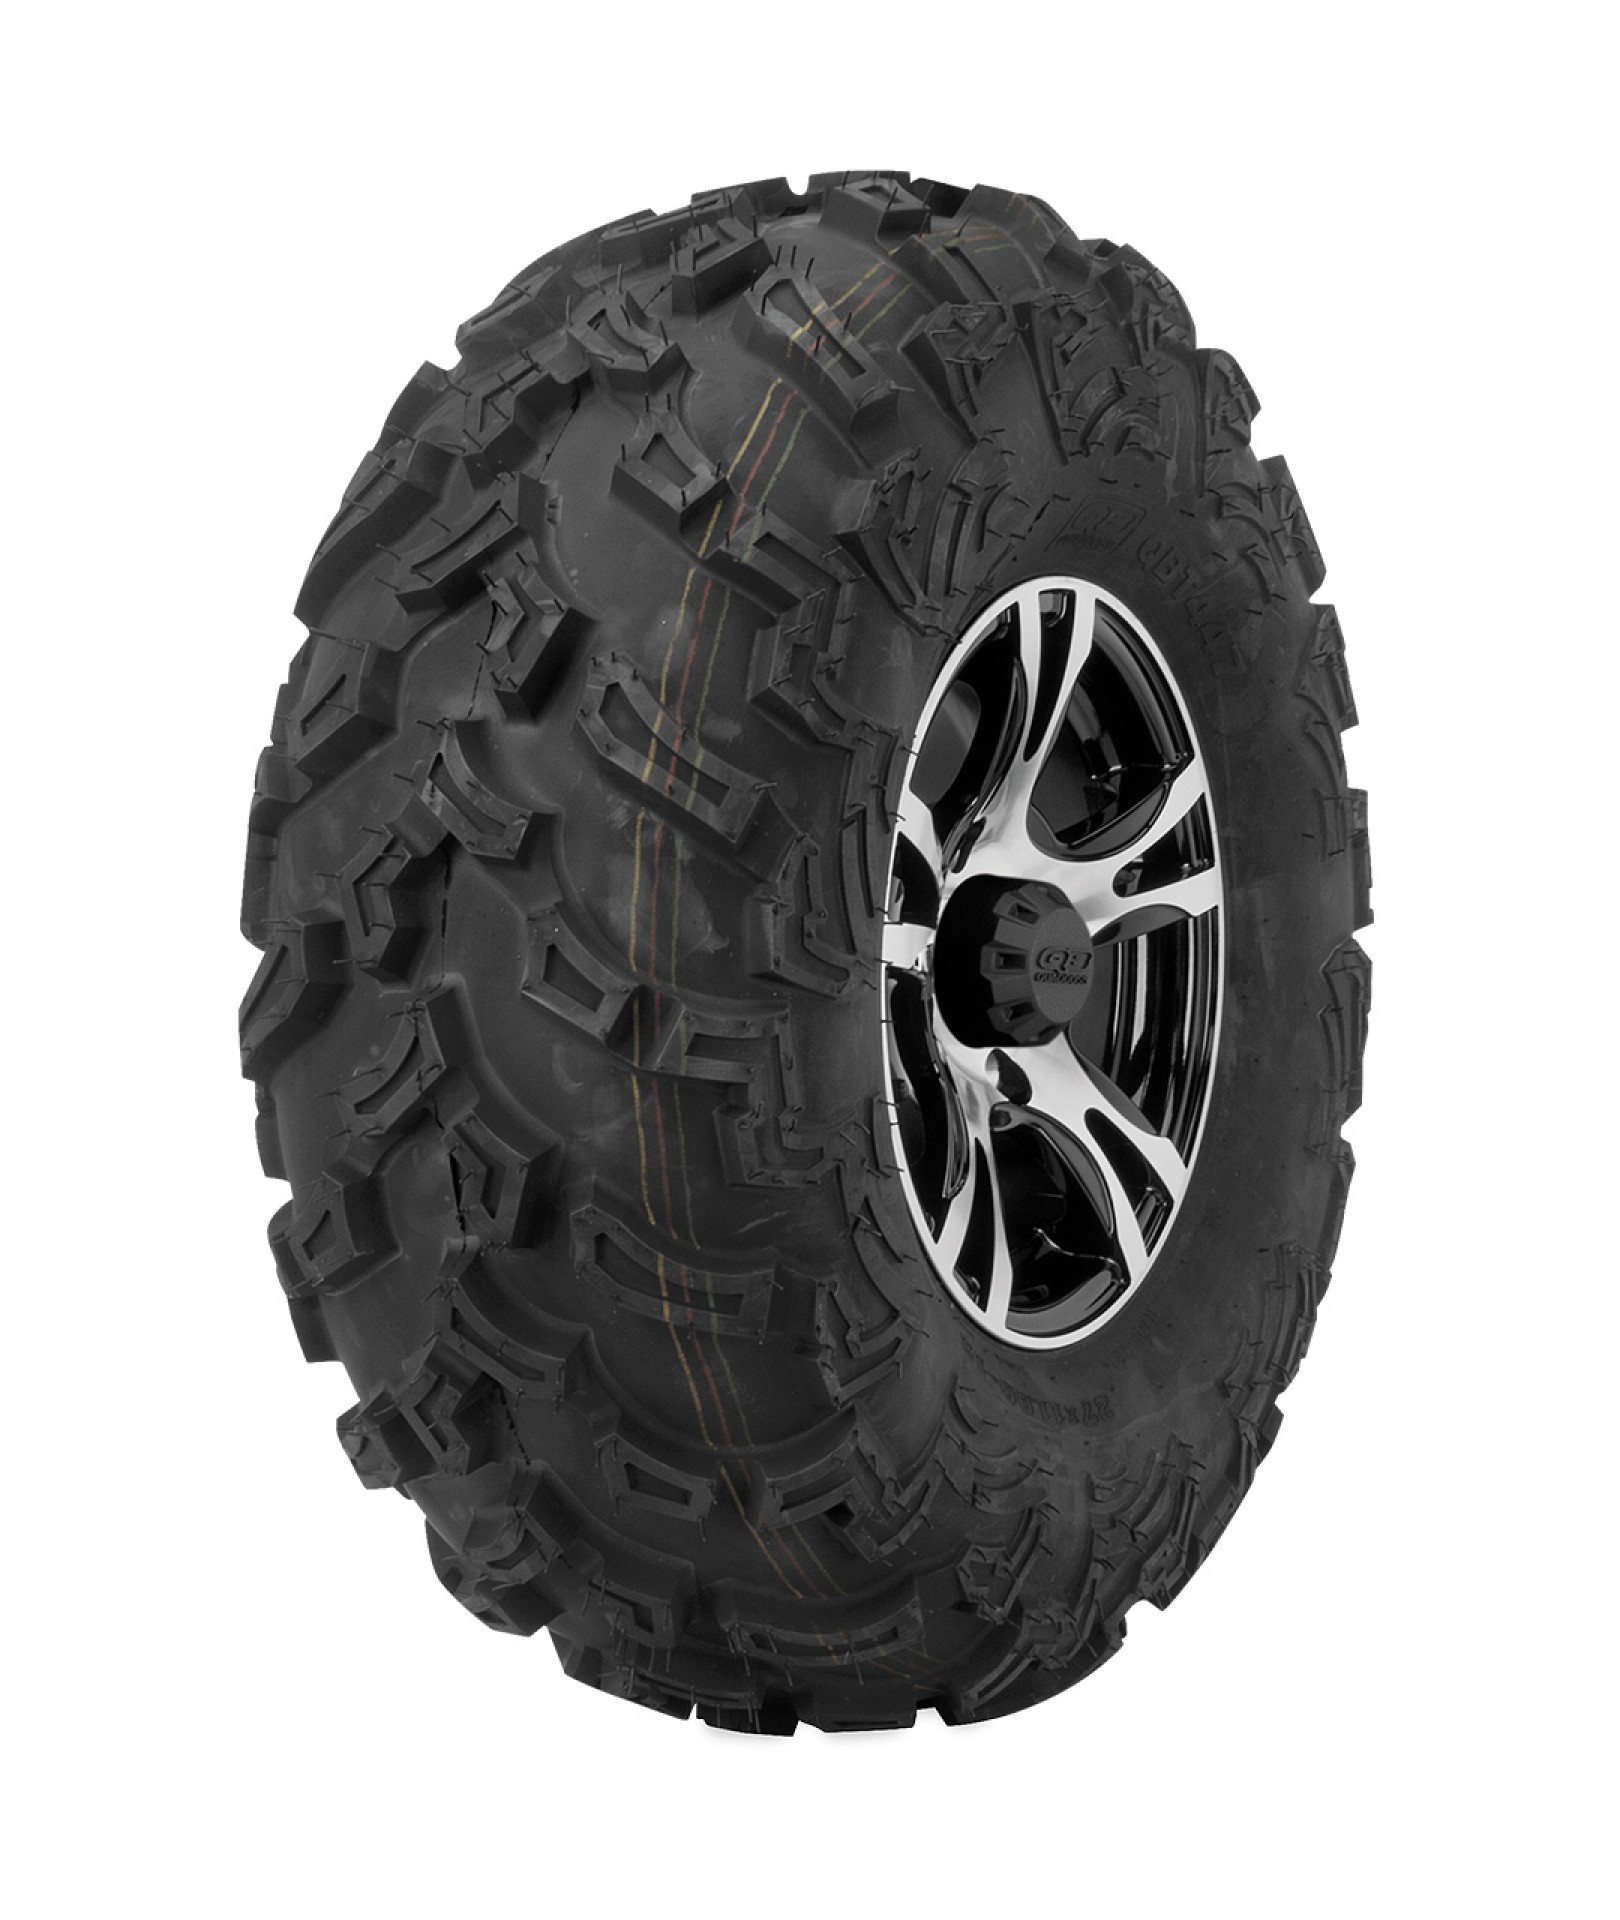 Bias Ply Tires >> QBT447 Utility Tires - Tire & Wheel